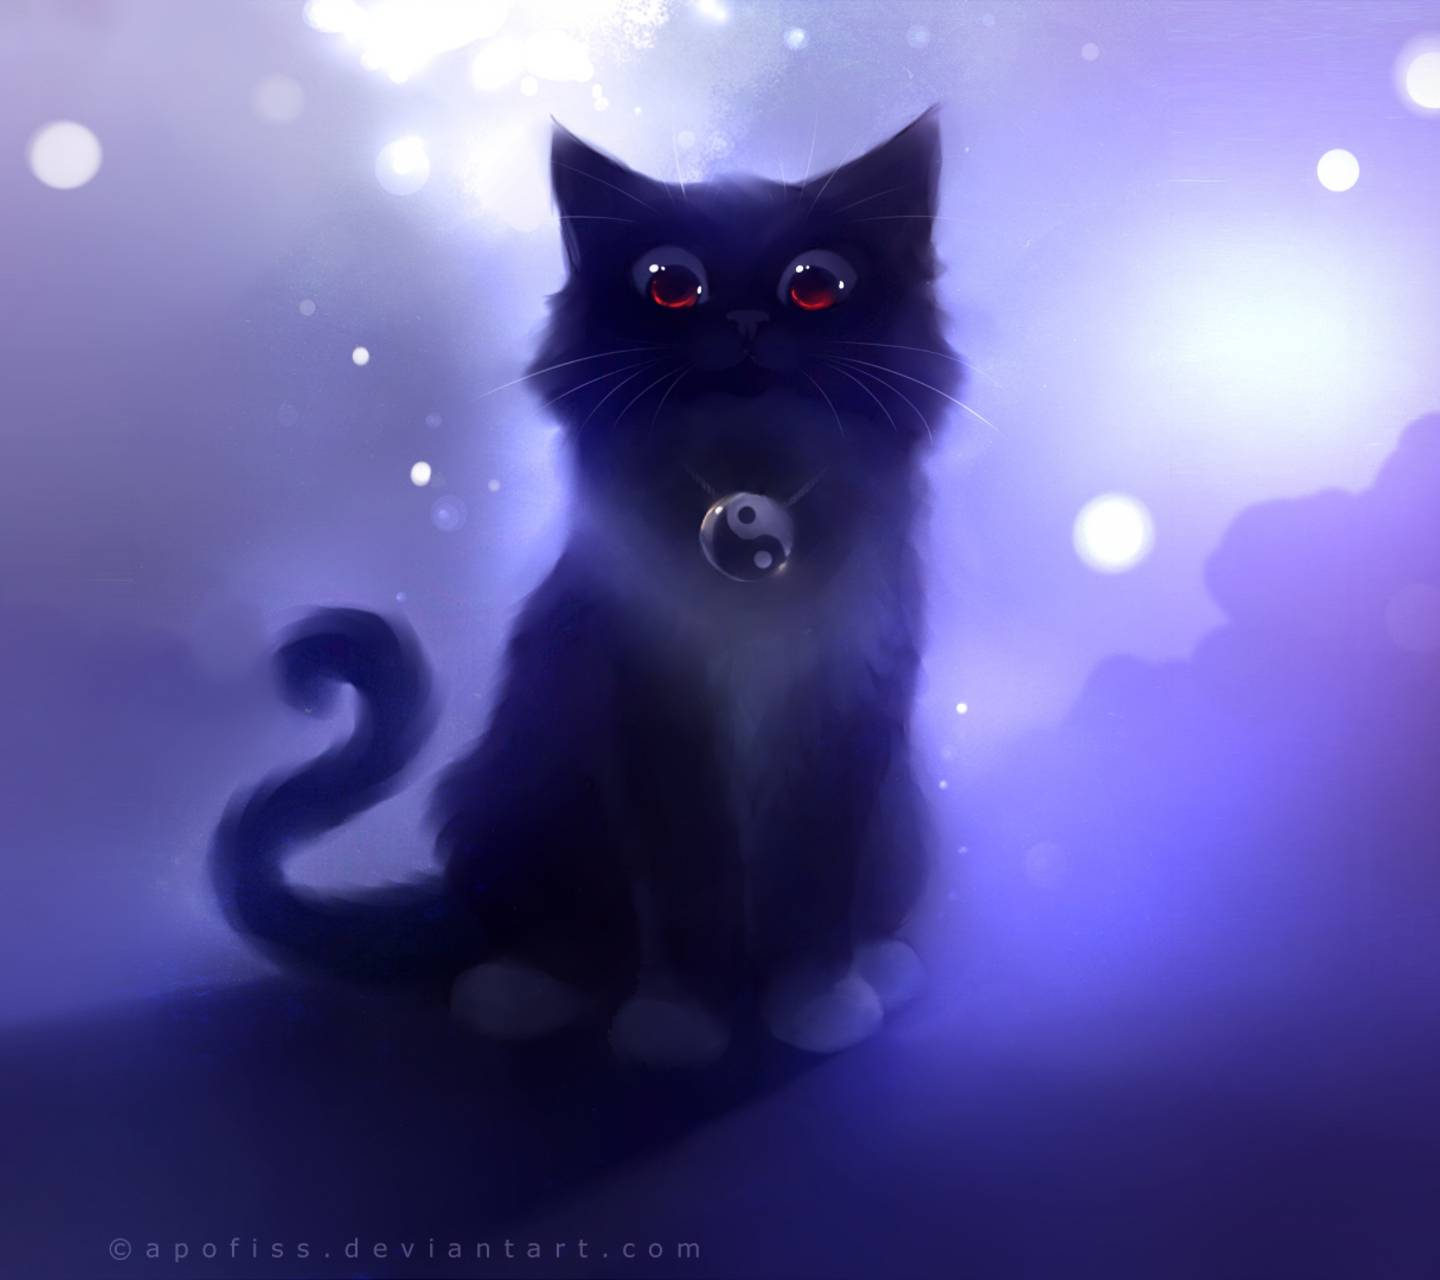 Anime cat wallpaper by jd bowers 52 free on zedge - Anime cat wallpaper ...